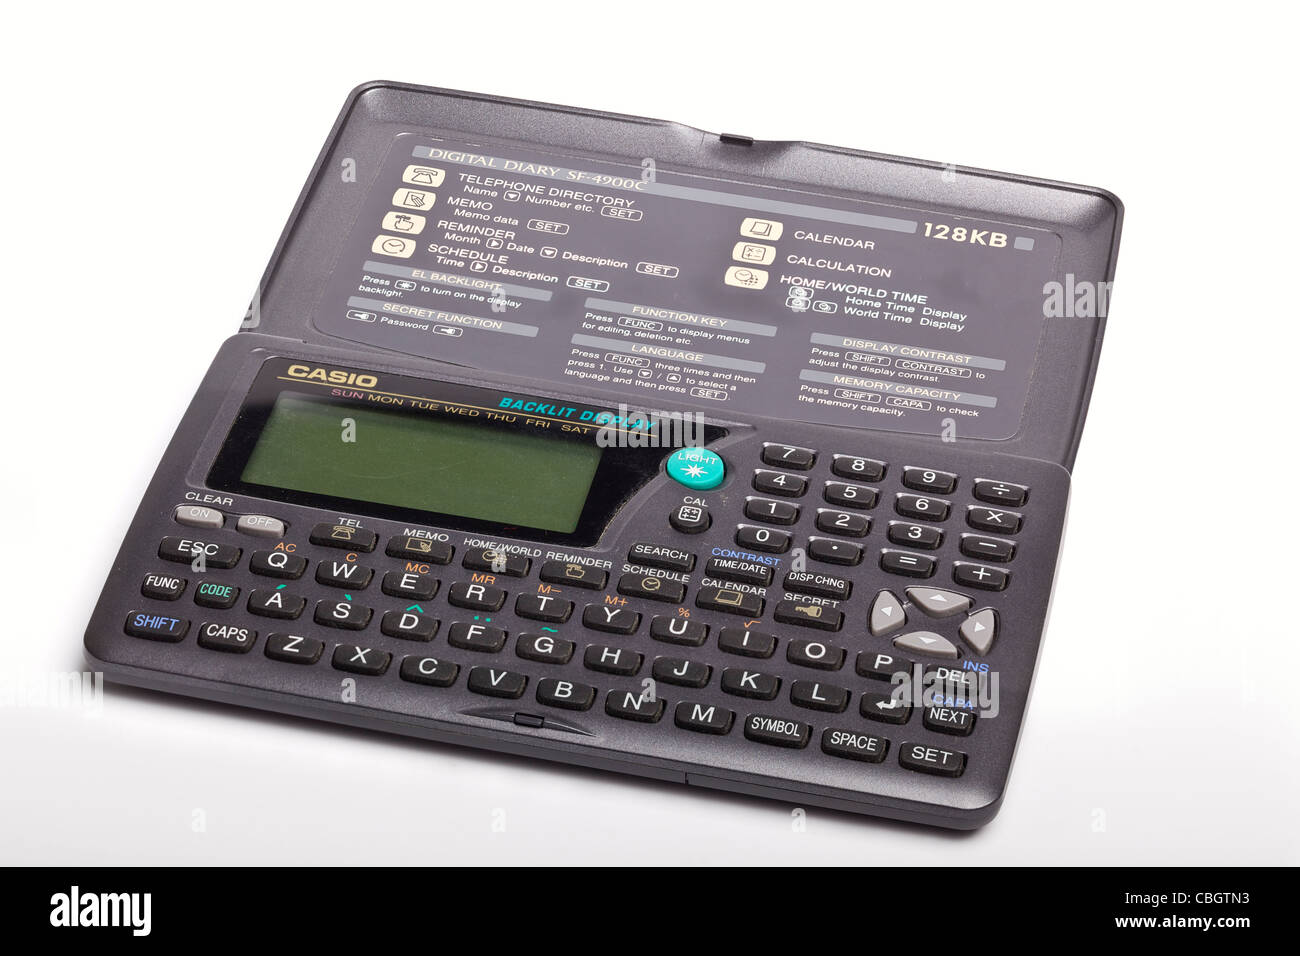 Casio SF-4900C digital diary and organiser from the 1990s - Stock Image